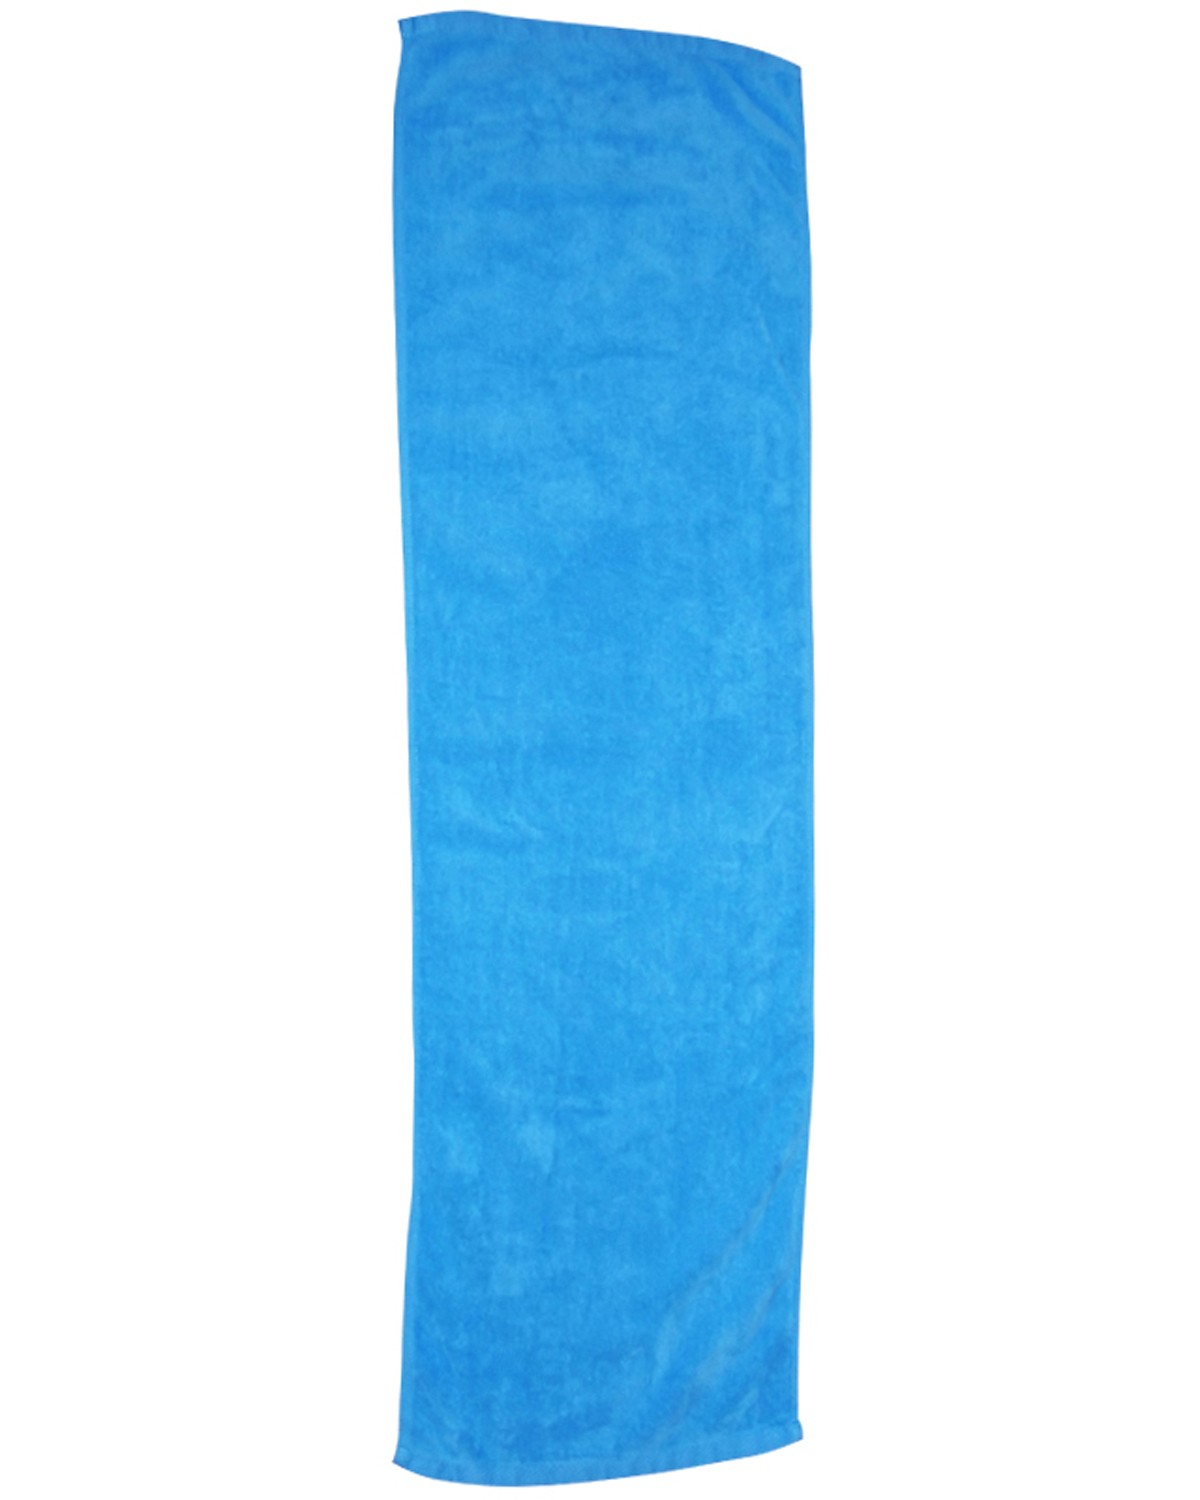 FT42CF Pro Towels COASTAL BLUE